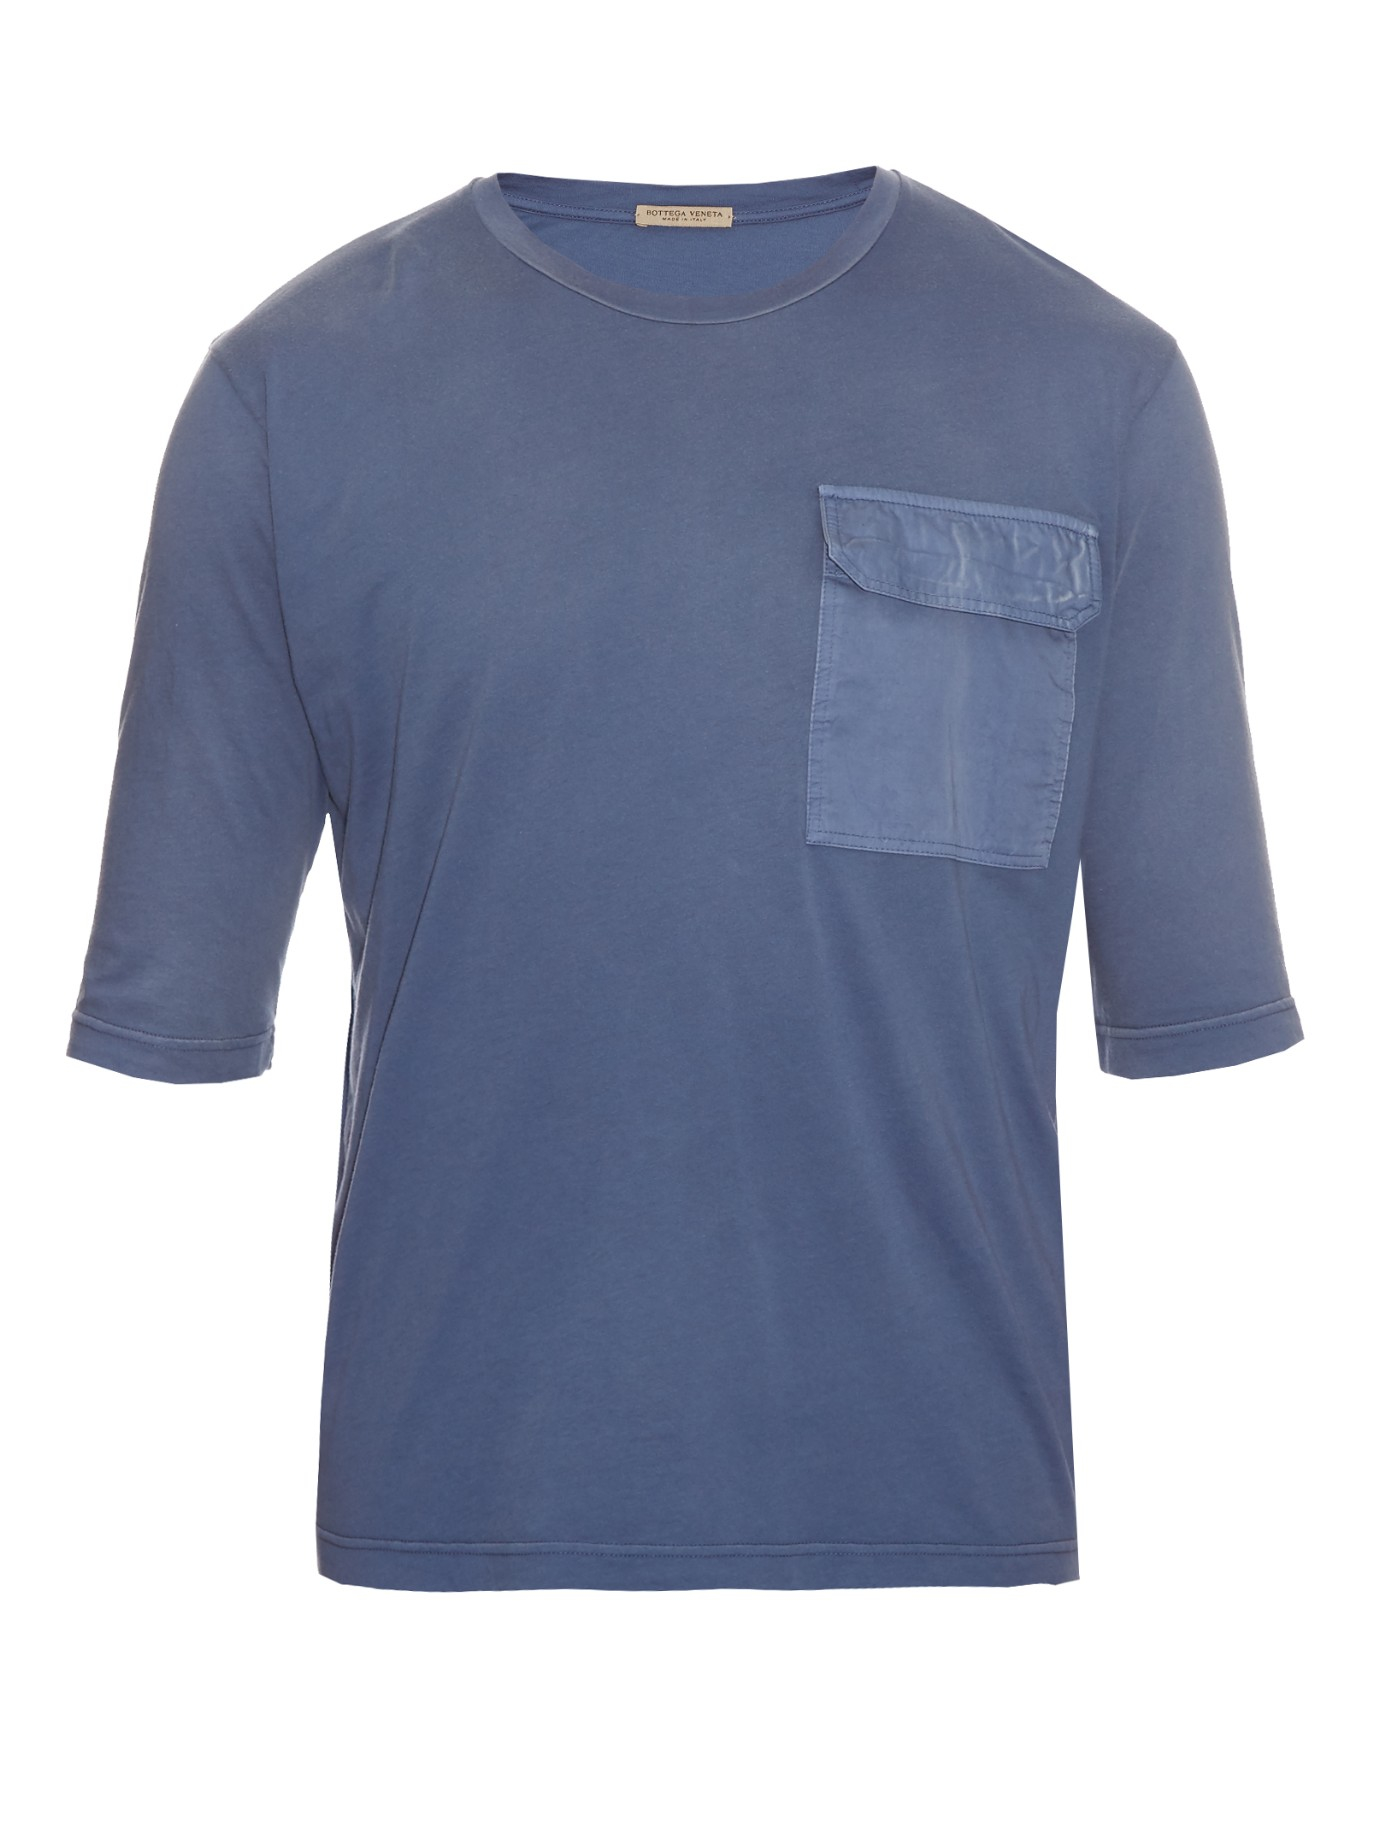 Bottega veneta patch pocket cotton t shirt in blue for men for Bottega veneta t shirt